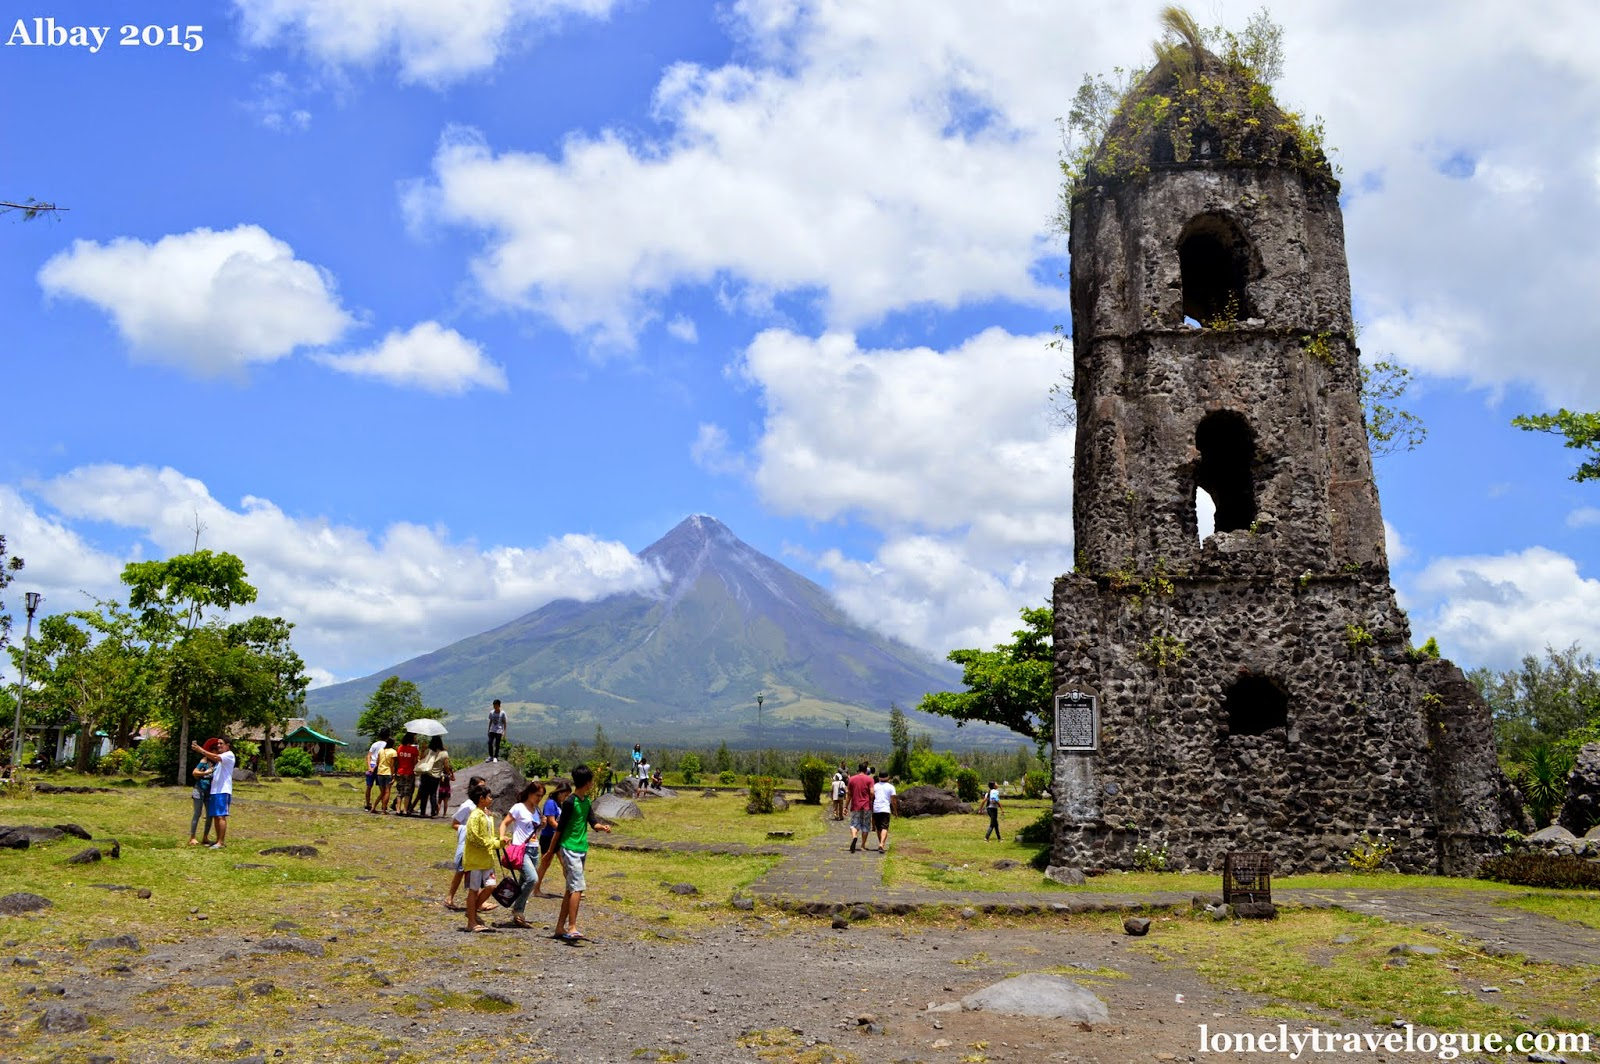 �baranggay information system ba�ag daraga albay� Long before the spaniards arrived, albay had a thriving civilization this active volcano falls under the jurisdiction of eight municipalities and cities of albay: camalig, daraga, guinobatan, legazpi city, ligao prior to colonization, the region had a complex religious system which involved various deities.